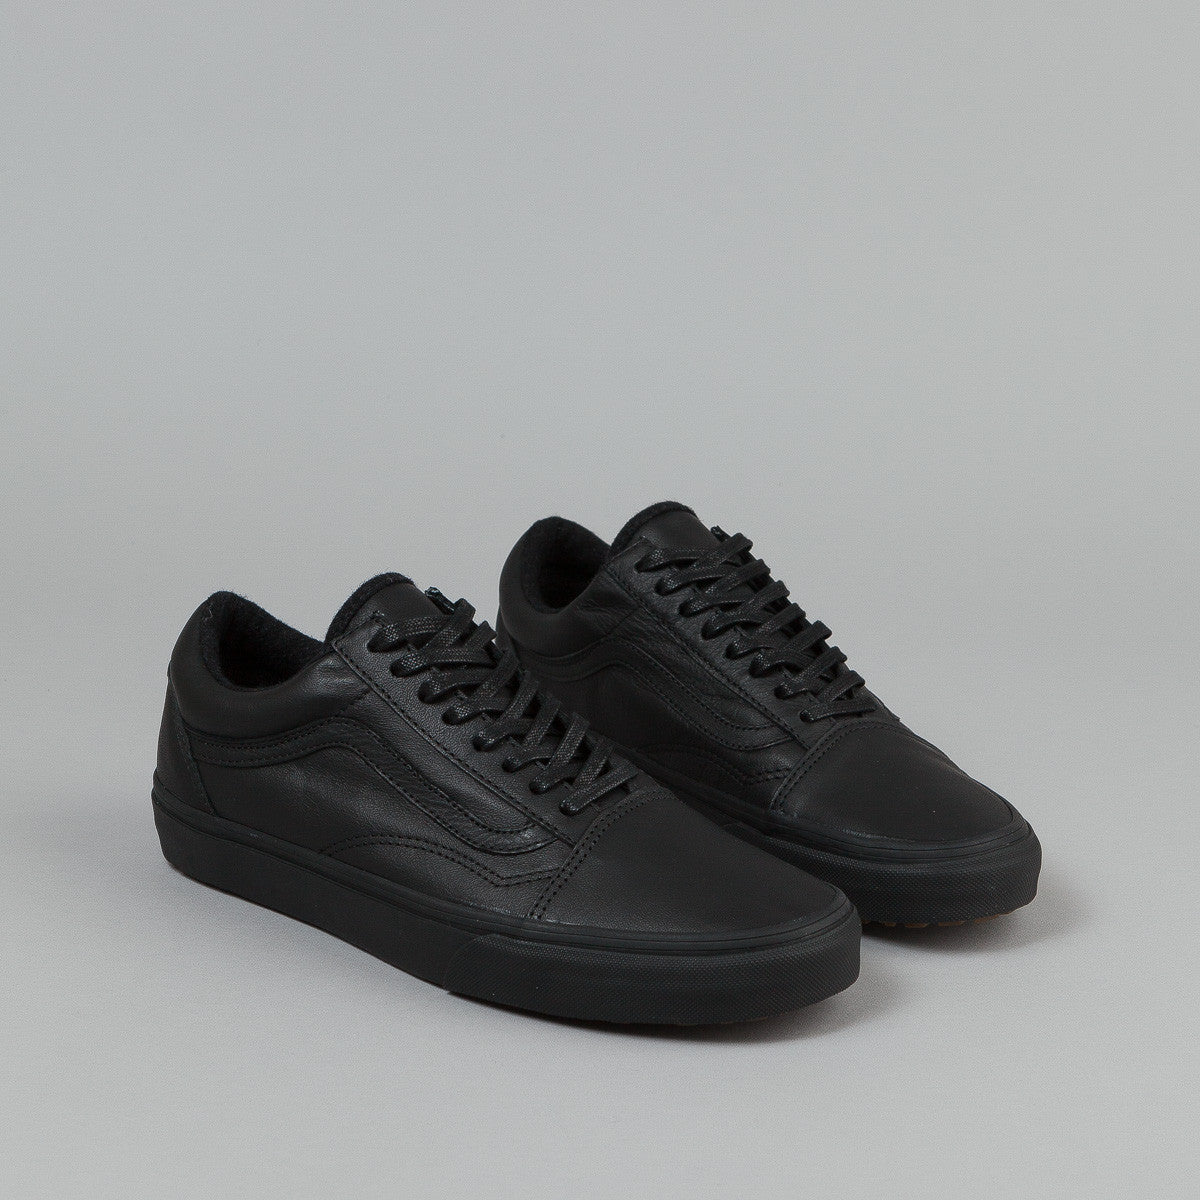 vans old skool mte shoes black leather flatspot. Black Bedroom Furniture Sets. Home Design Ideas